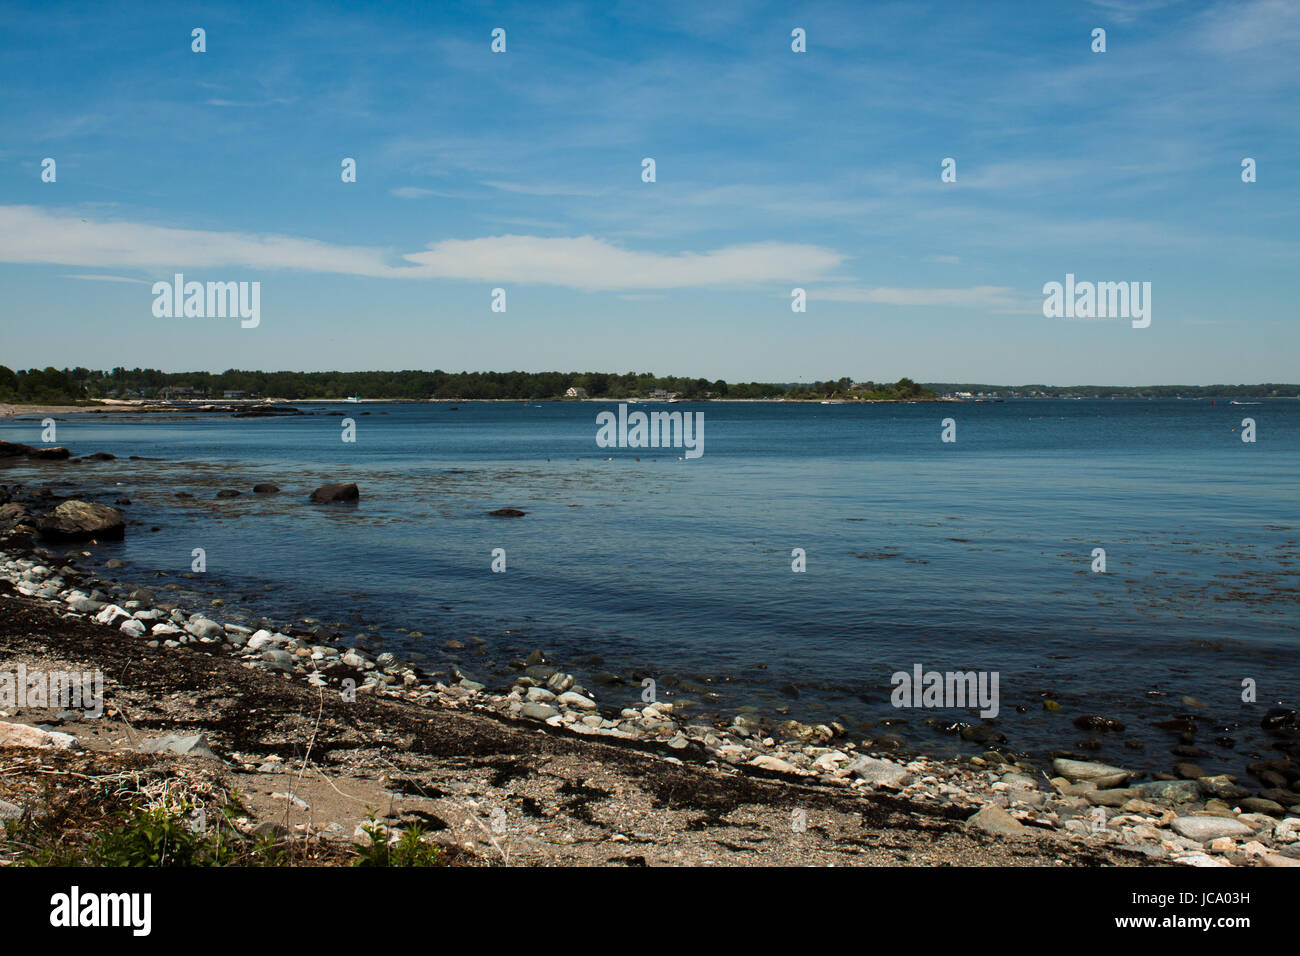 A landscape shot looking back at New Hampshire. - Stock Image